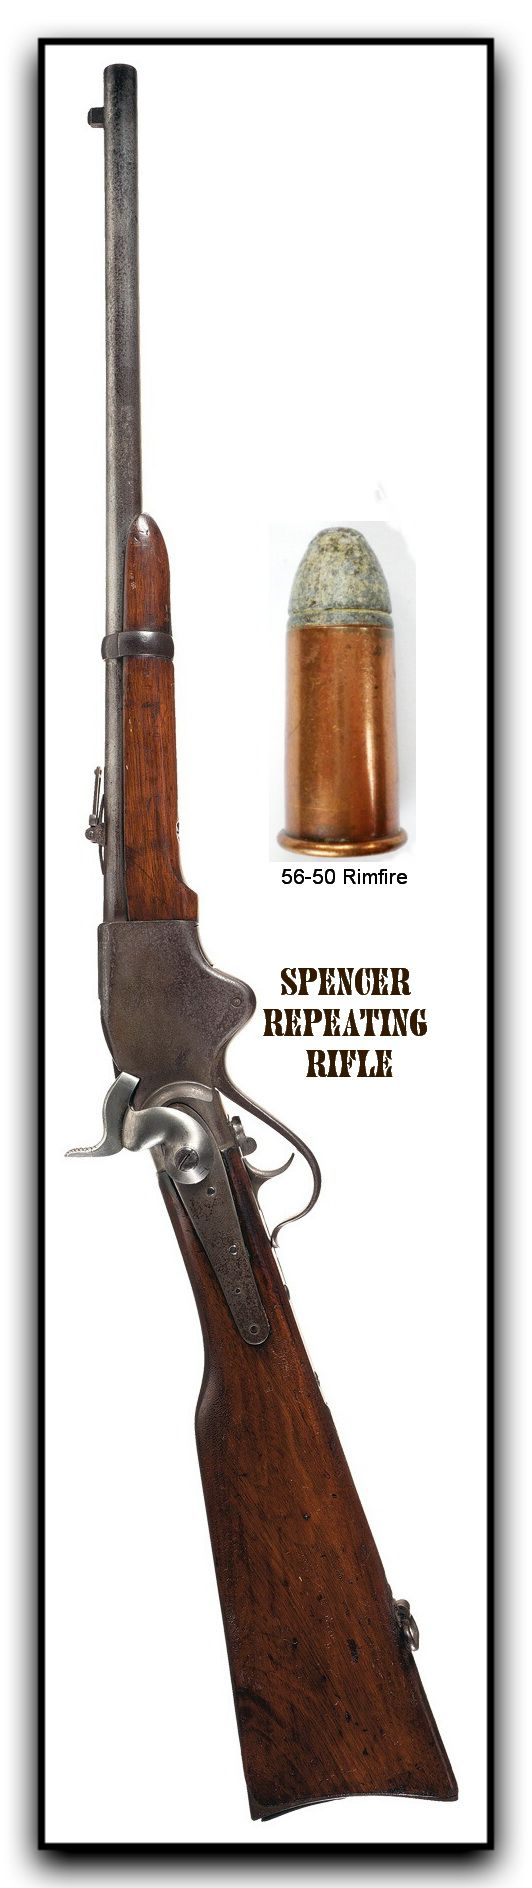 www.pinterest.com/1895gunner/  Spencer repeating rifles were designed in 1860 and saw some civil war action. The smaller carbine as we see in this illustration, was a popular gun in the early west. The original design was completed by Christopher Spencer